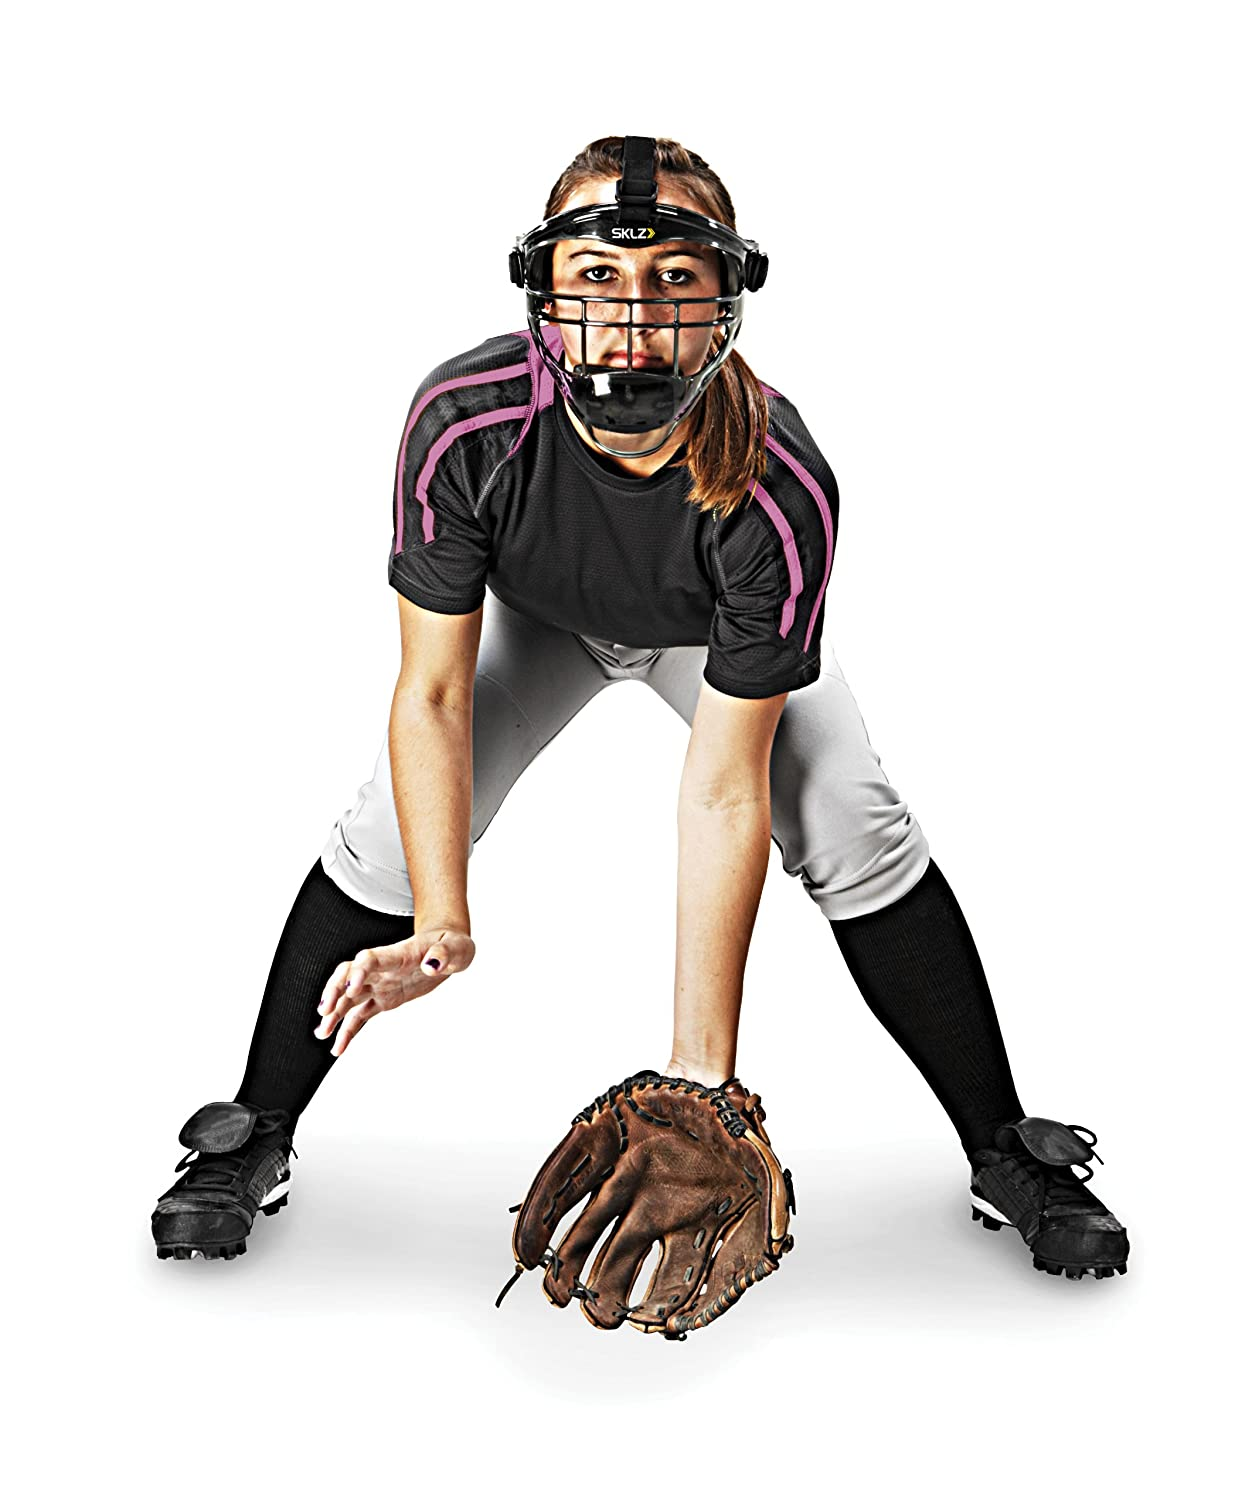 9c9ac36e Amazon.com : SKLZ Field Shield. Full-Face Protection Mask for Softball  (Youth/Adult Sizes). : Baseball Face Guards : Sports & Outdoors